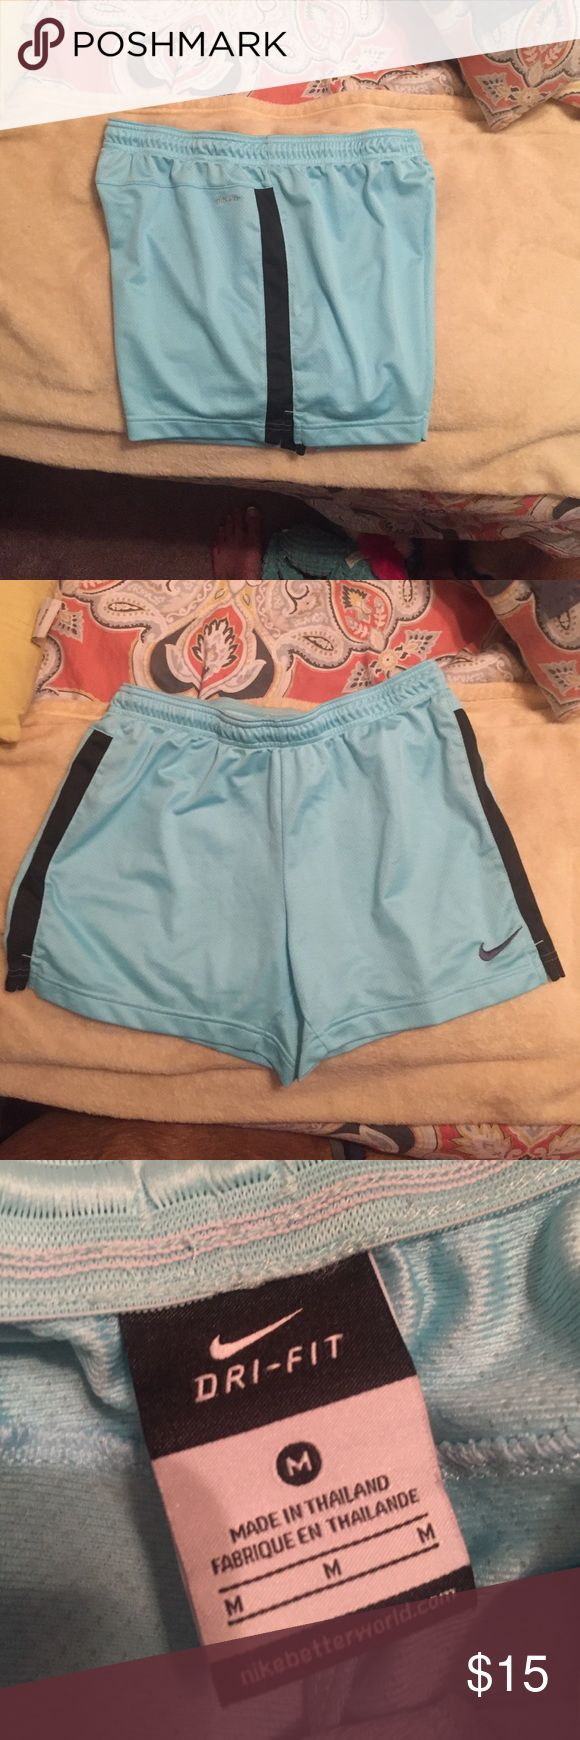 Nike shorts Womens Nike shorts! They are baby blue and black :) never worn! Nike Shorts